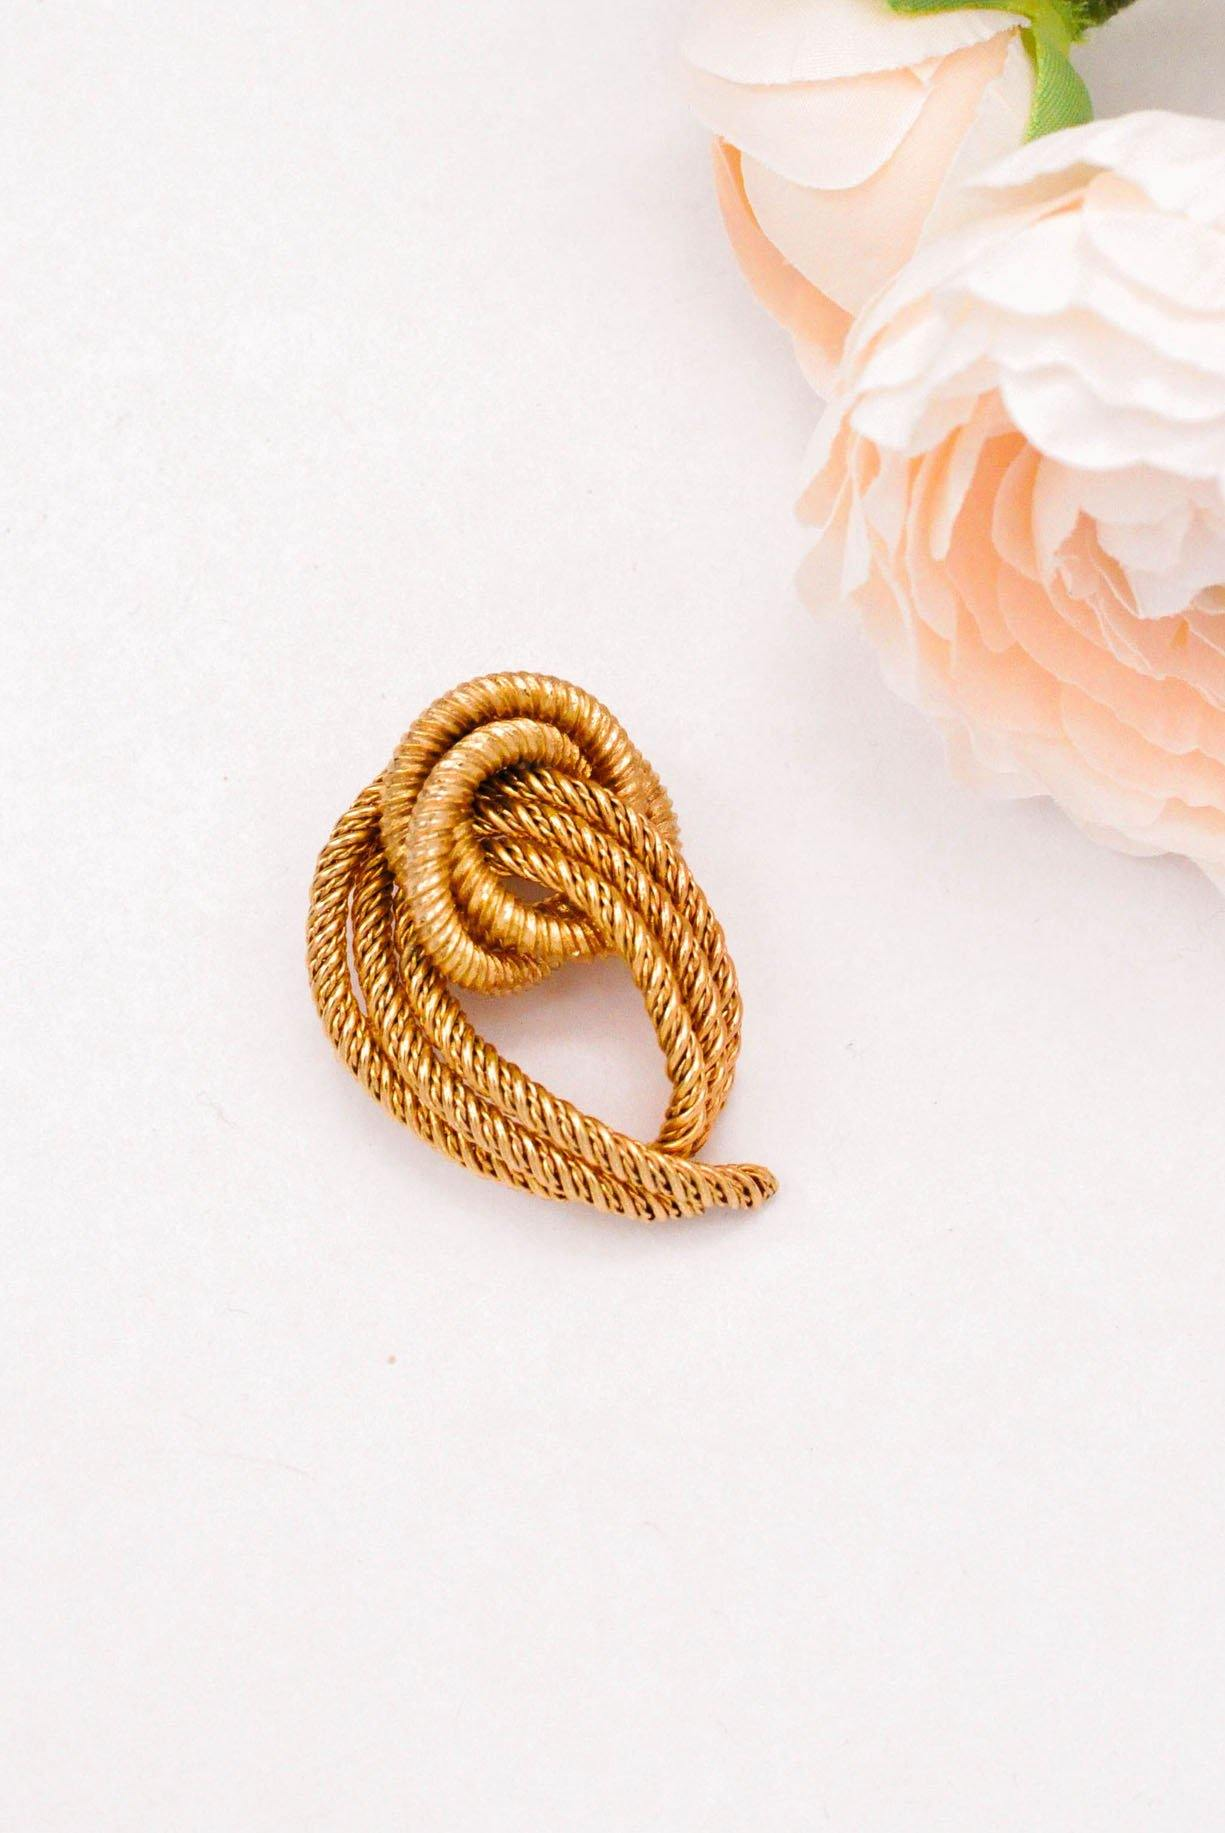 Knotted Rope Brooch